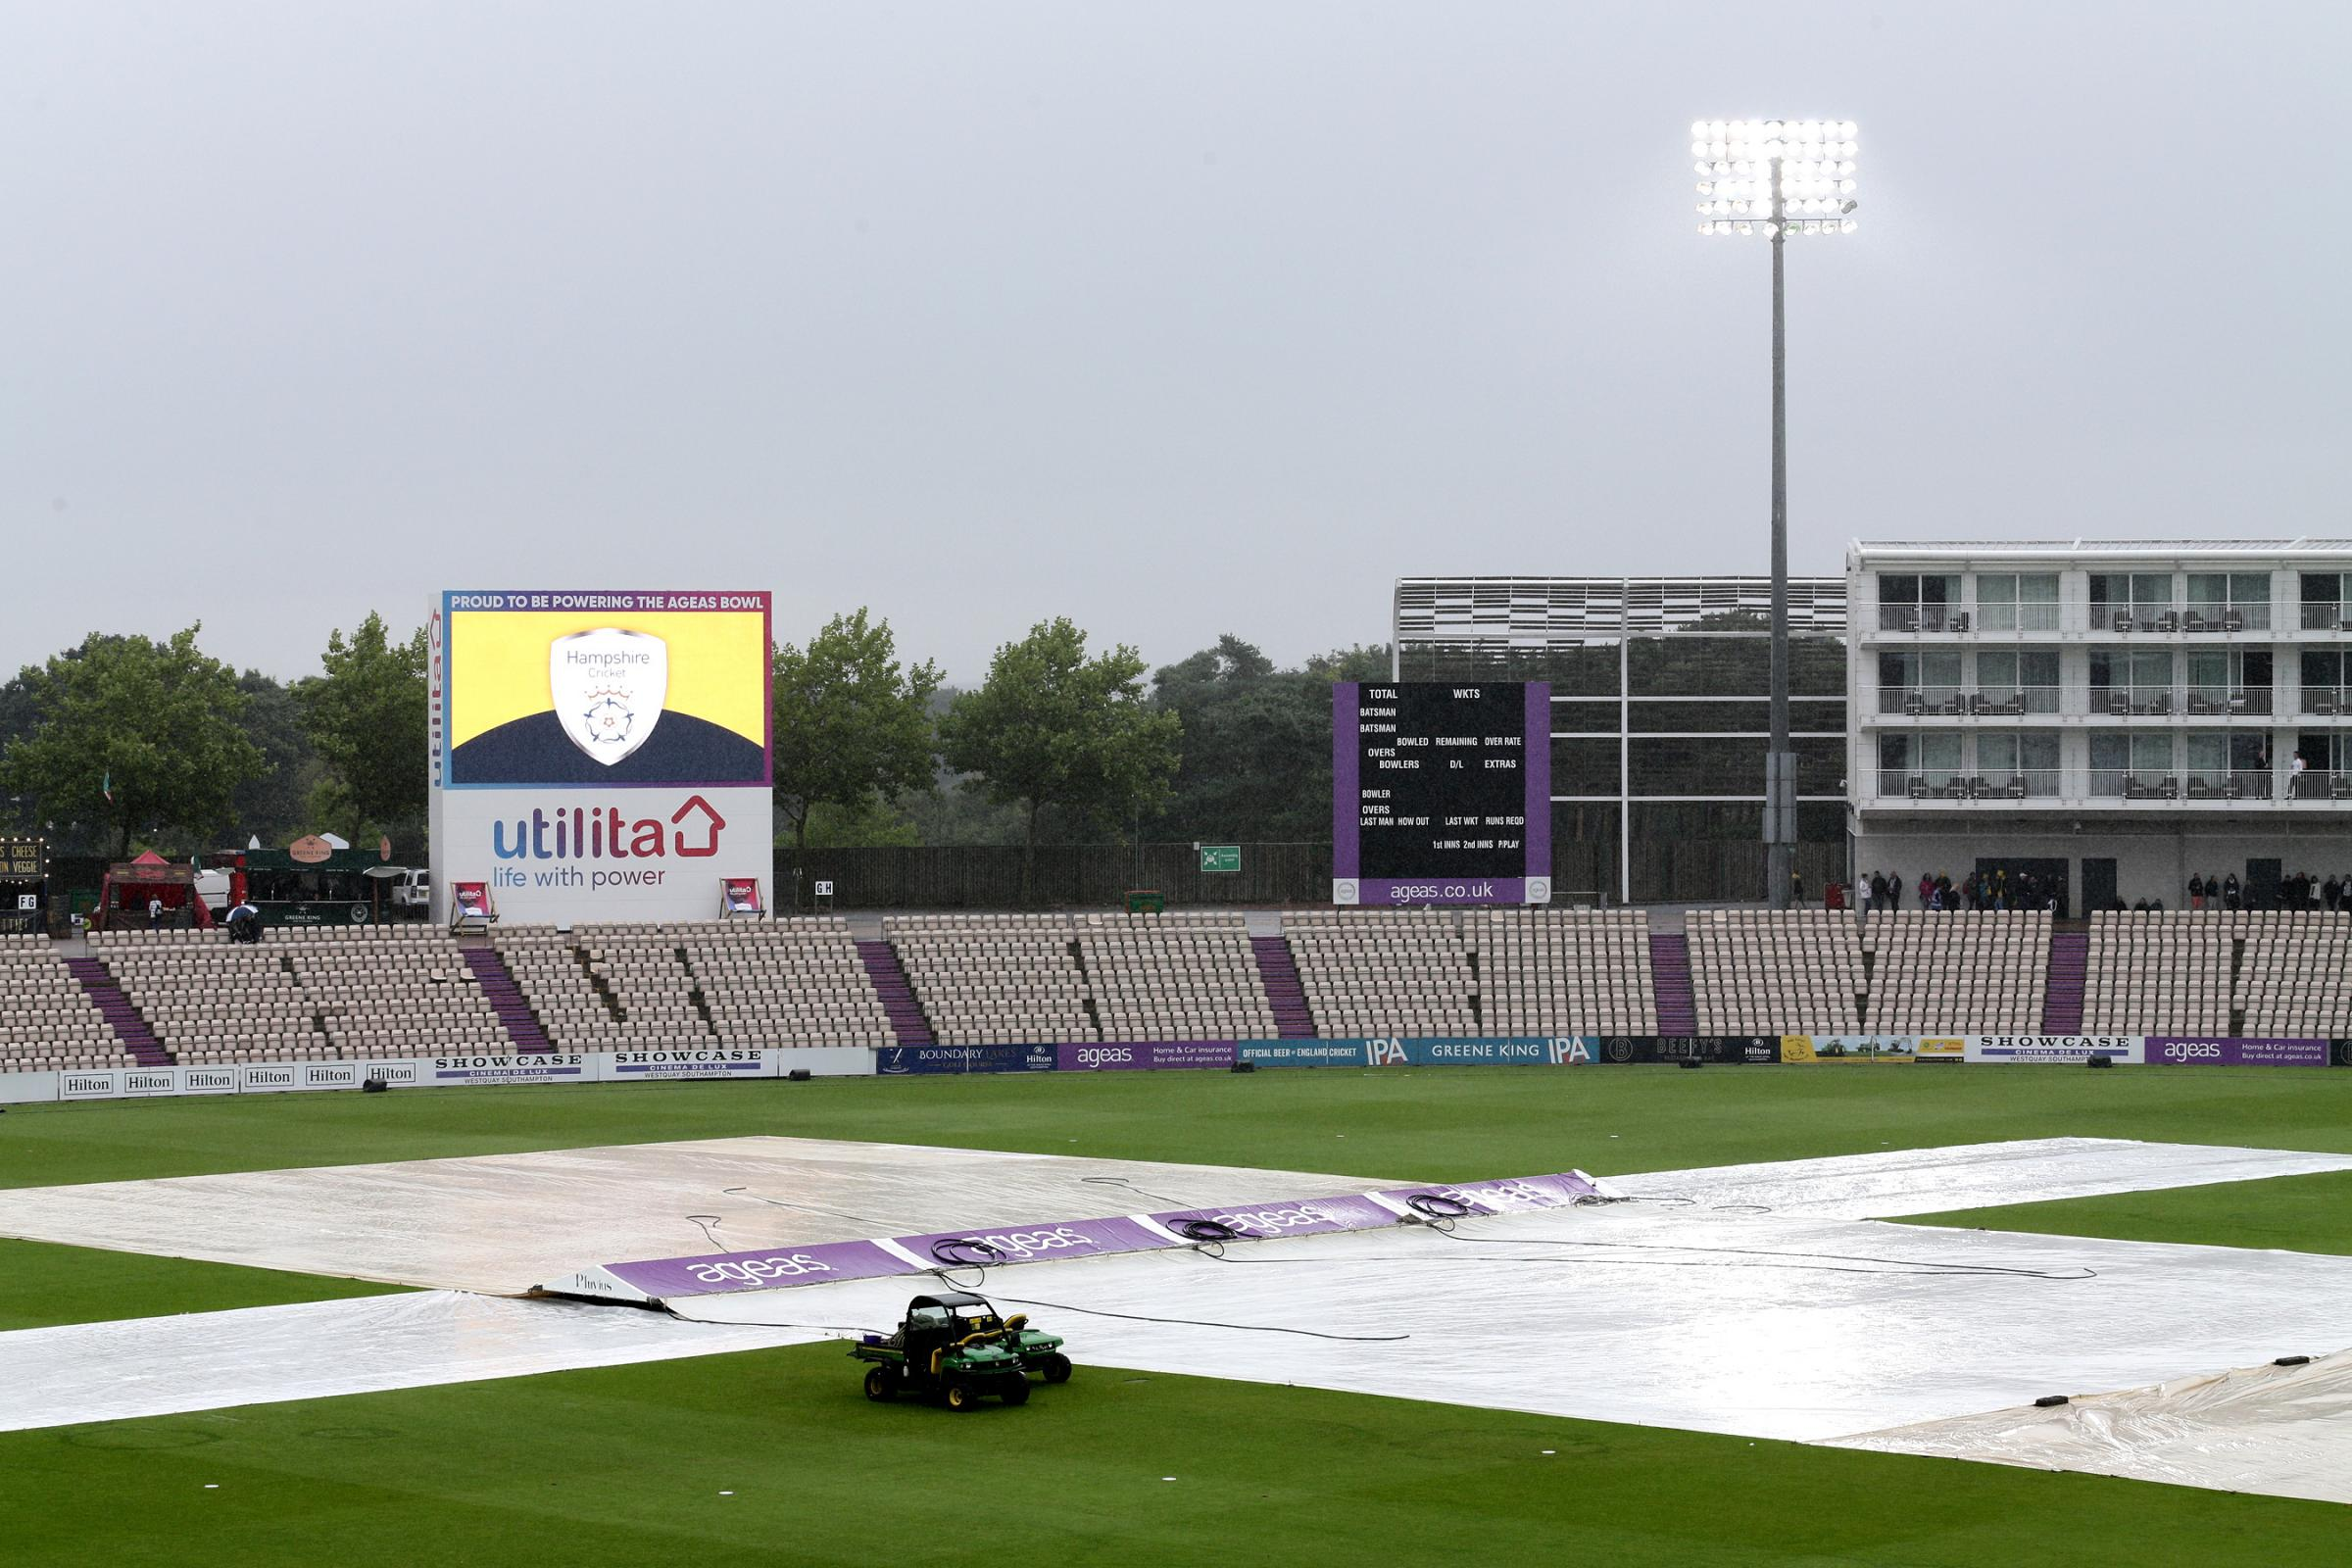 Here comes the rain again - Essex Eagles' Vitality Blast clash with Hampshire was abandoned after just 7.5 overs Picture: TGSPHOTO